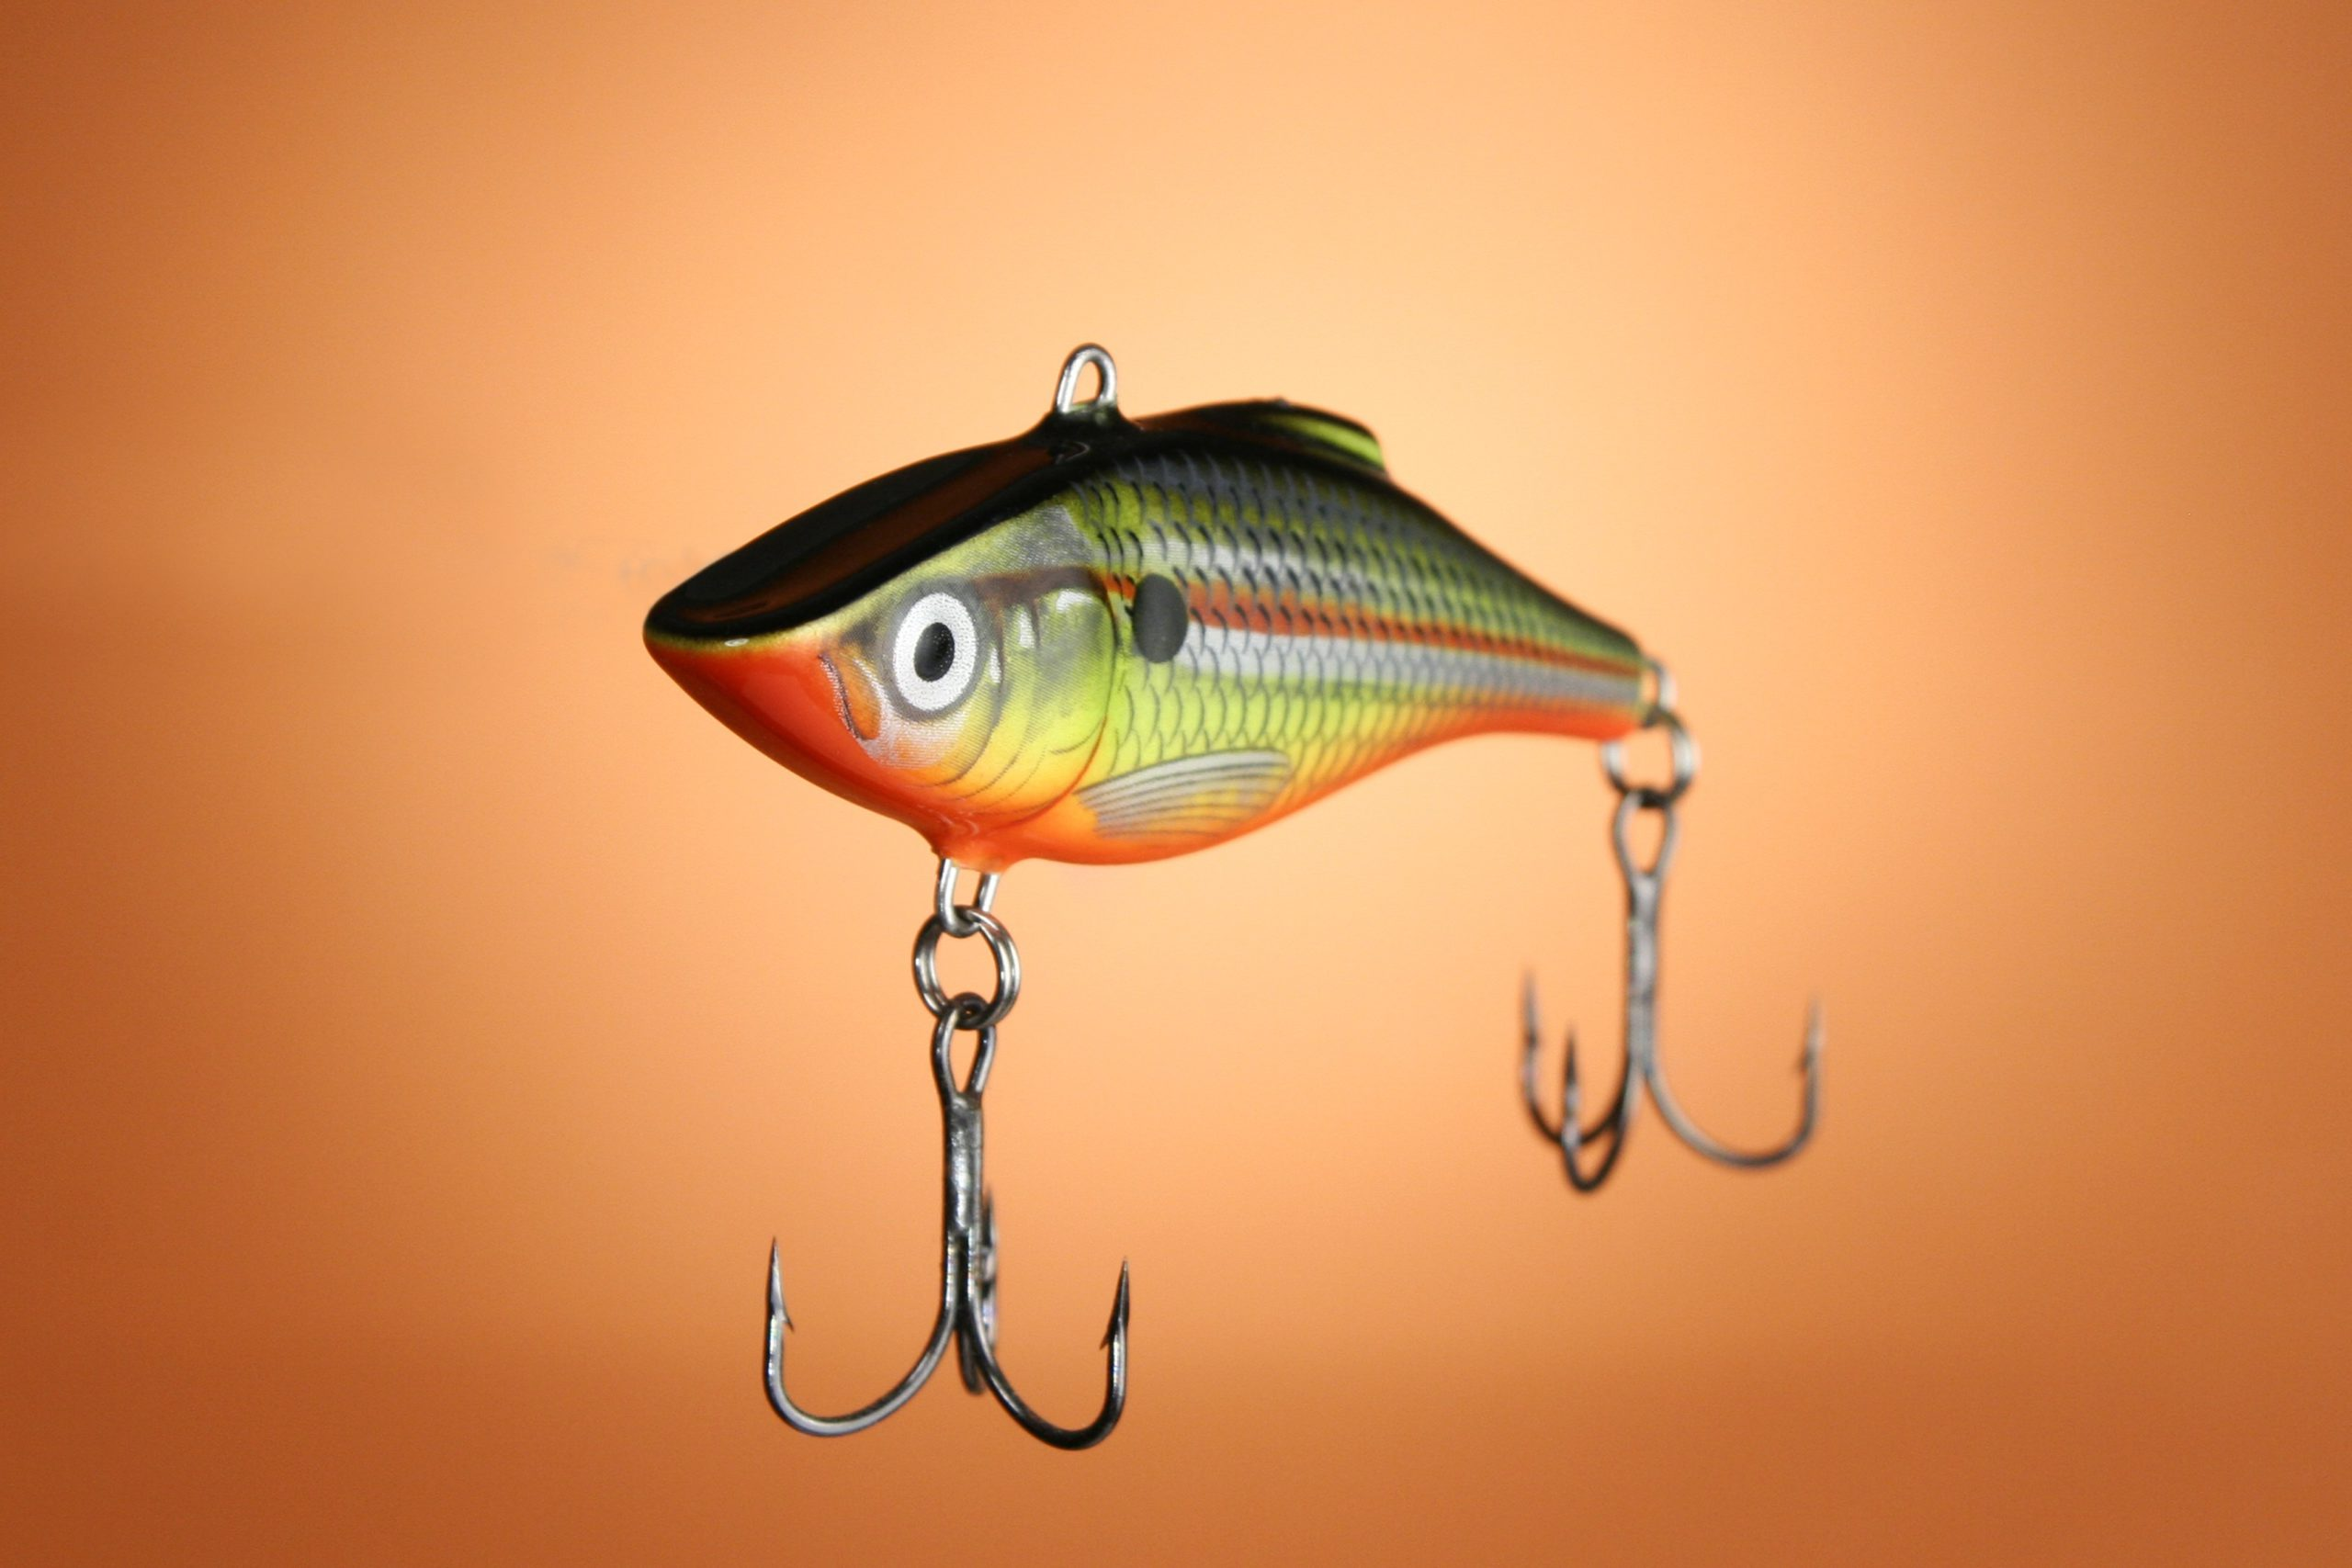 A lipless crankbait in a shad pattern on an orange background.